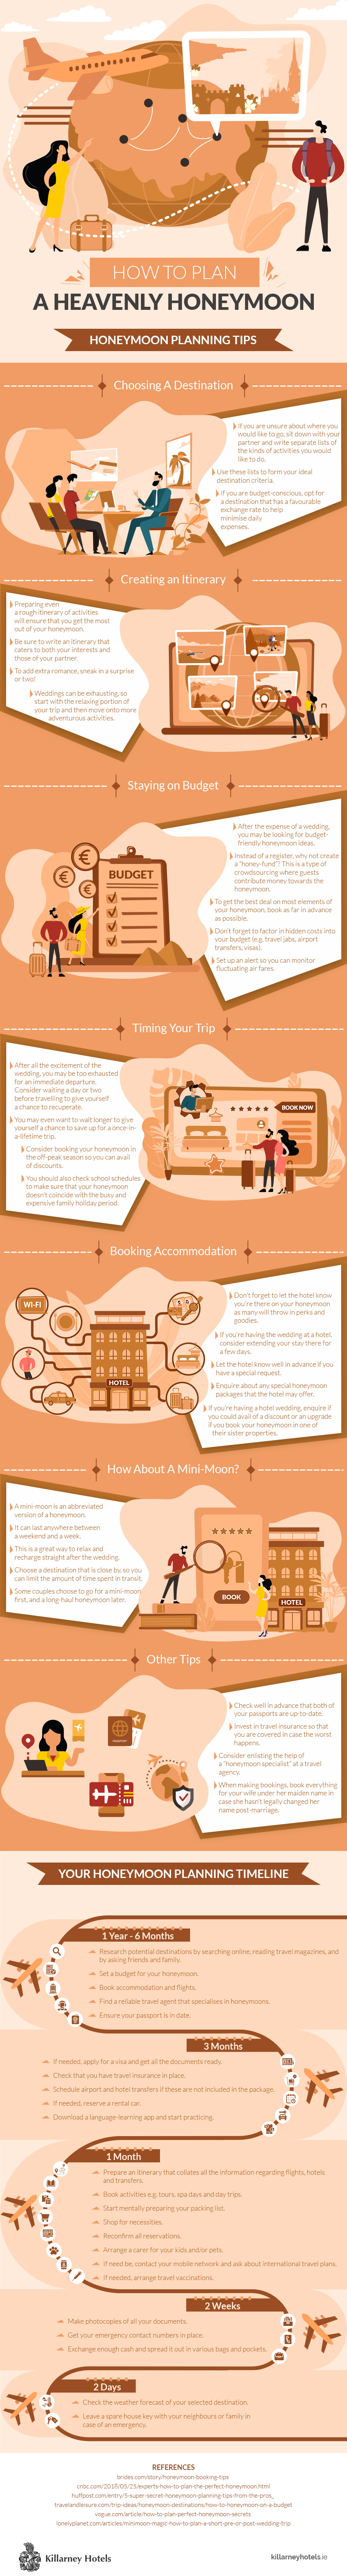 How to Plan A Heavenly Honeymoon (Infographic)